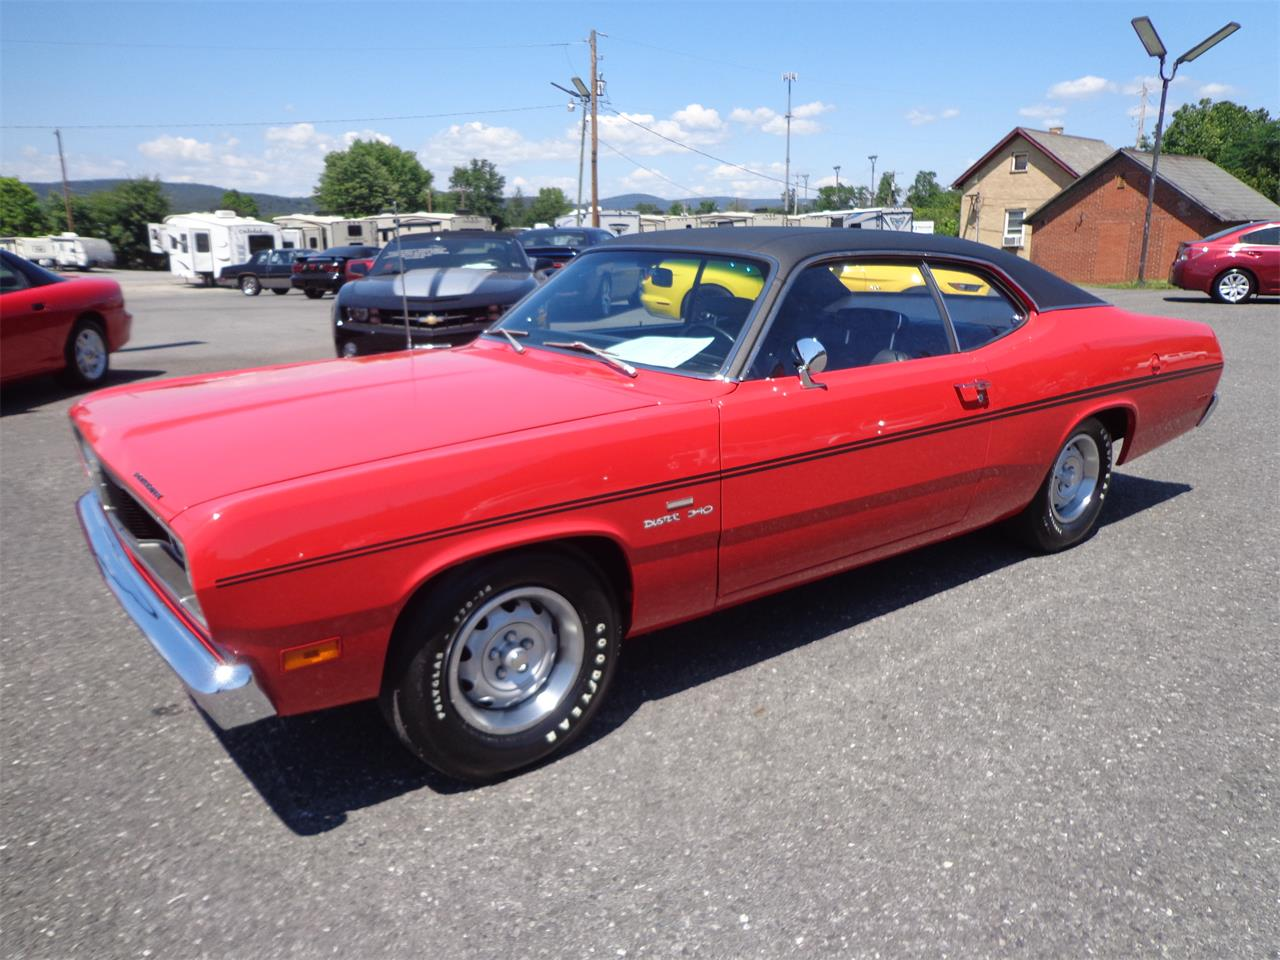 Large Picture of Classic 1970 Plymouth Duster located in MILL HALL Pennsylvania - $45,995.00 Offered by Miller Brothers Auto Sales Inc - LO30